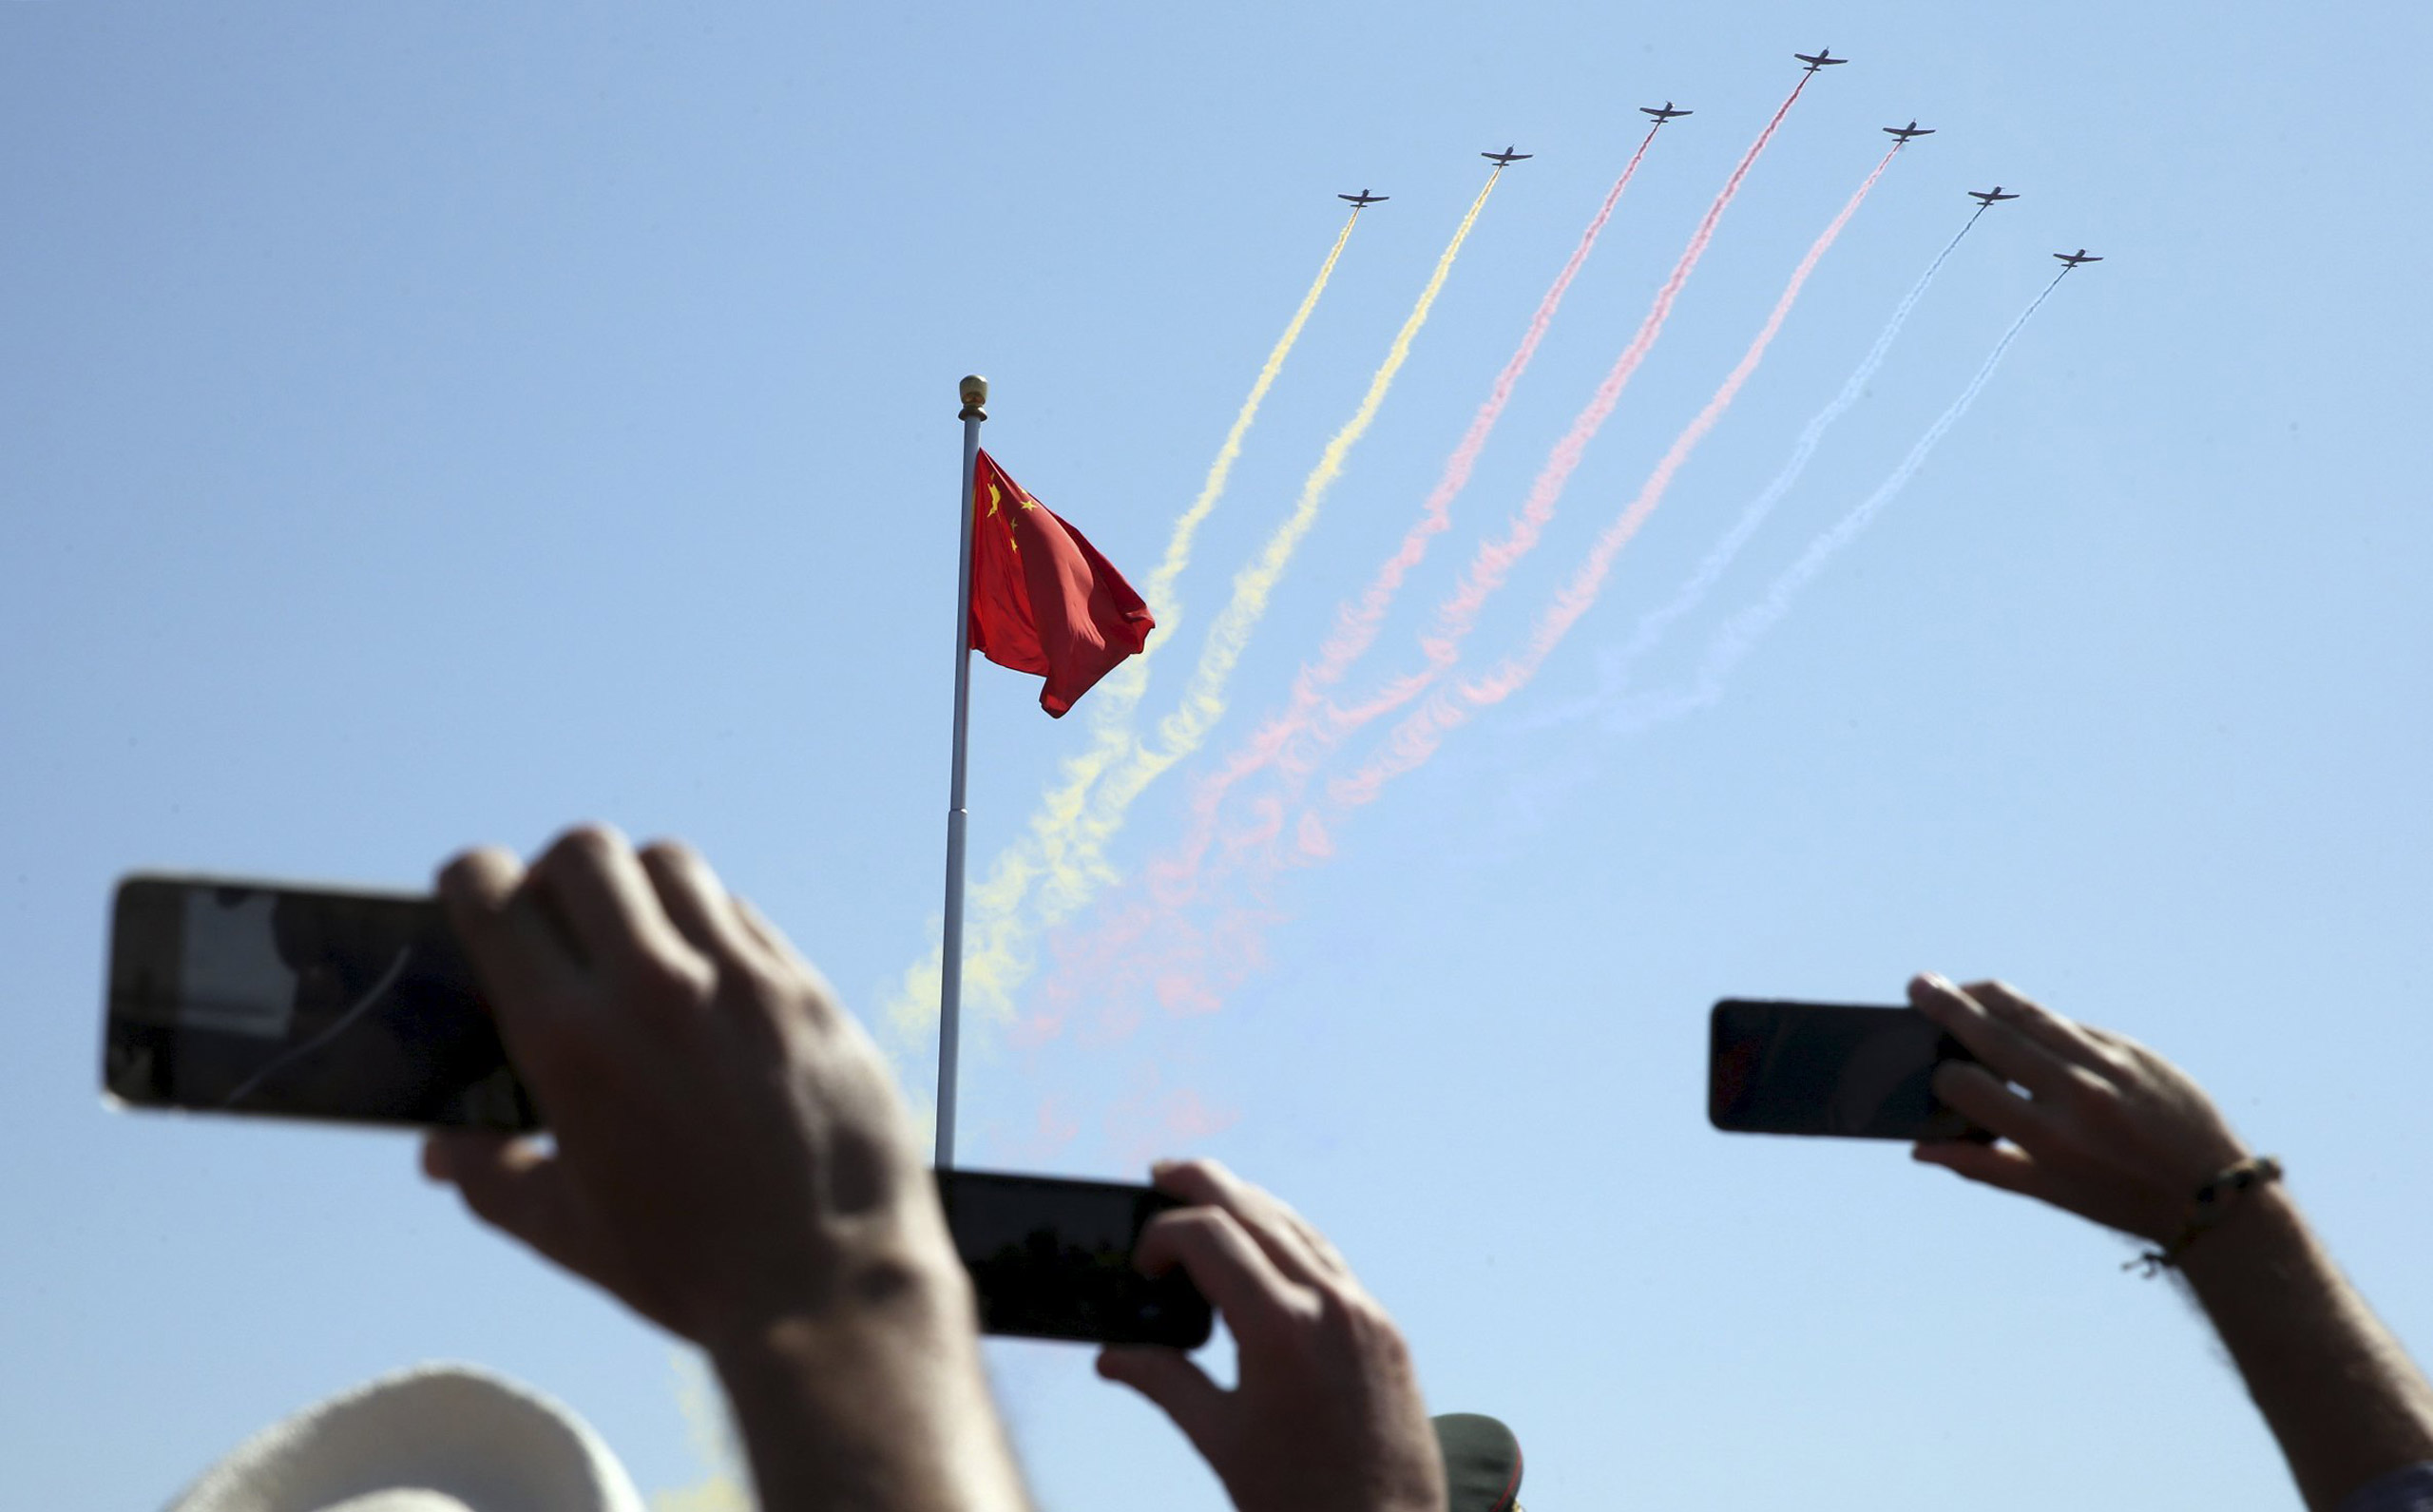 People record trainer jets flying over Tiananmen Square during a military parade to mark the 70th anniversary of the end of World War II in Beijing, on Sept. 3, 2015.